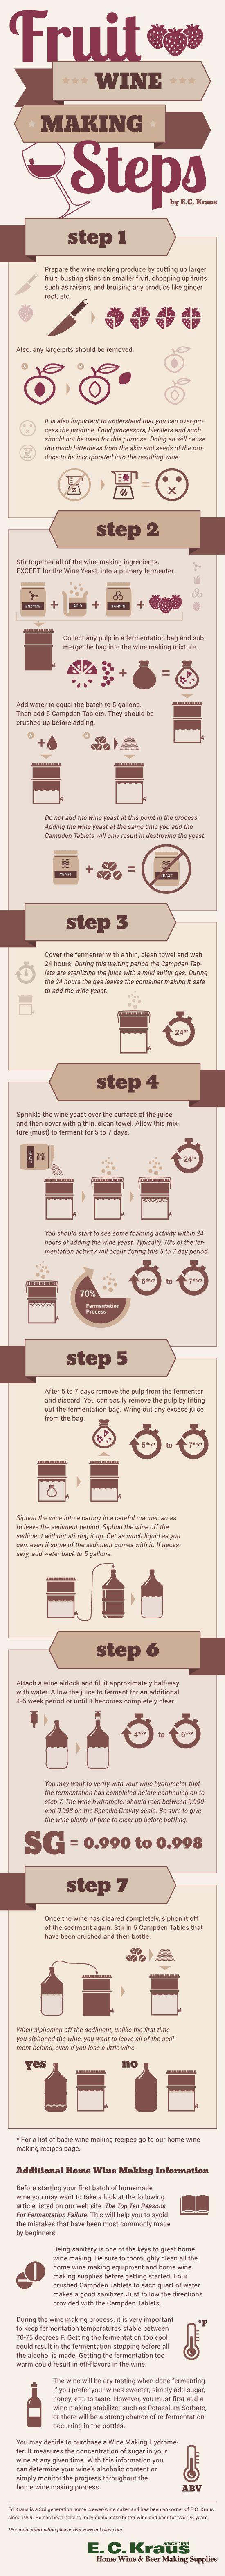 Fruit Wine Making Steps